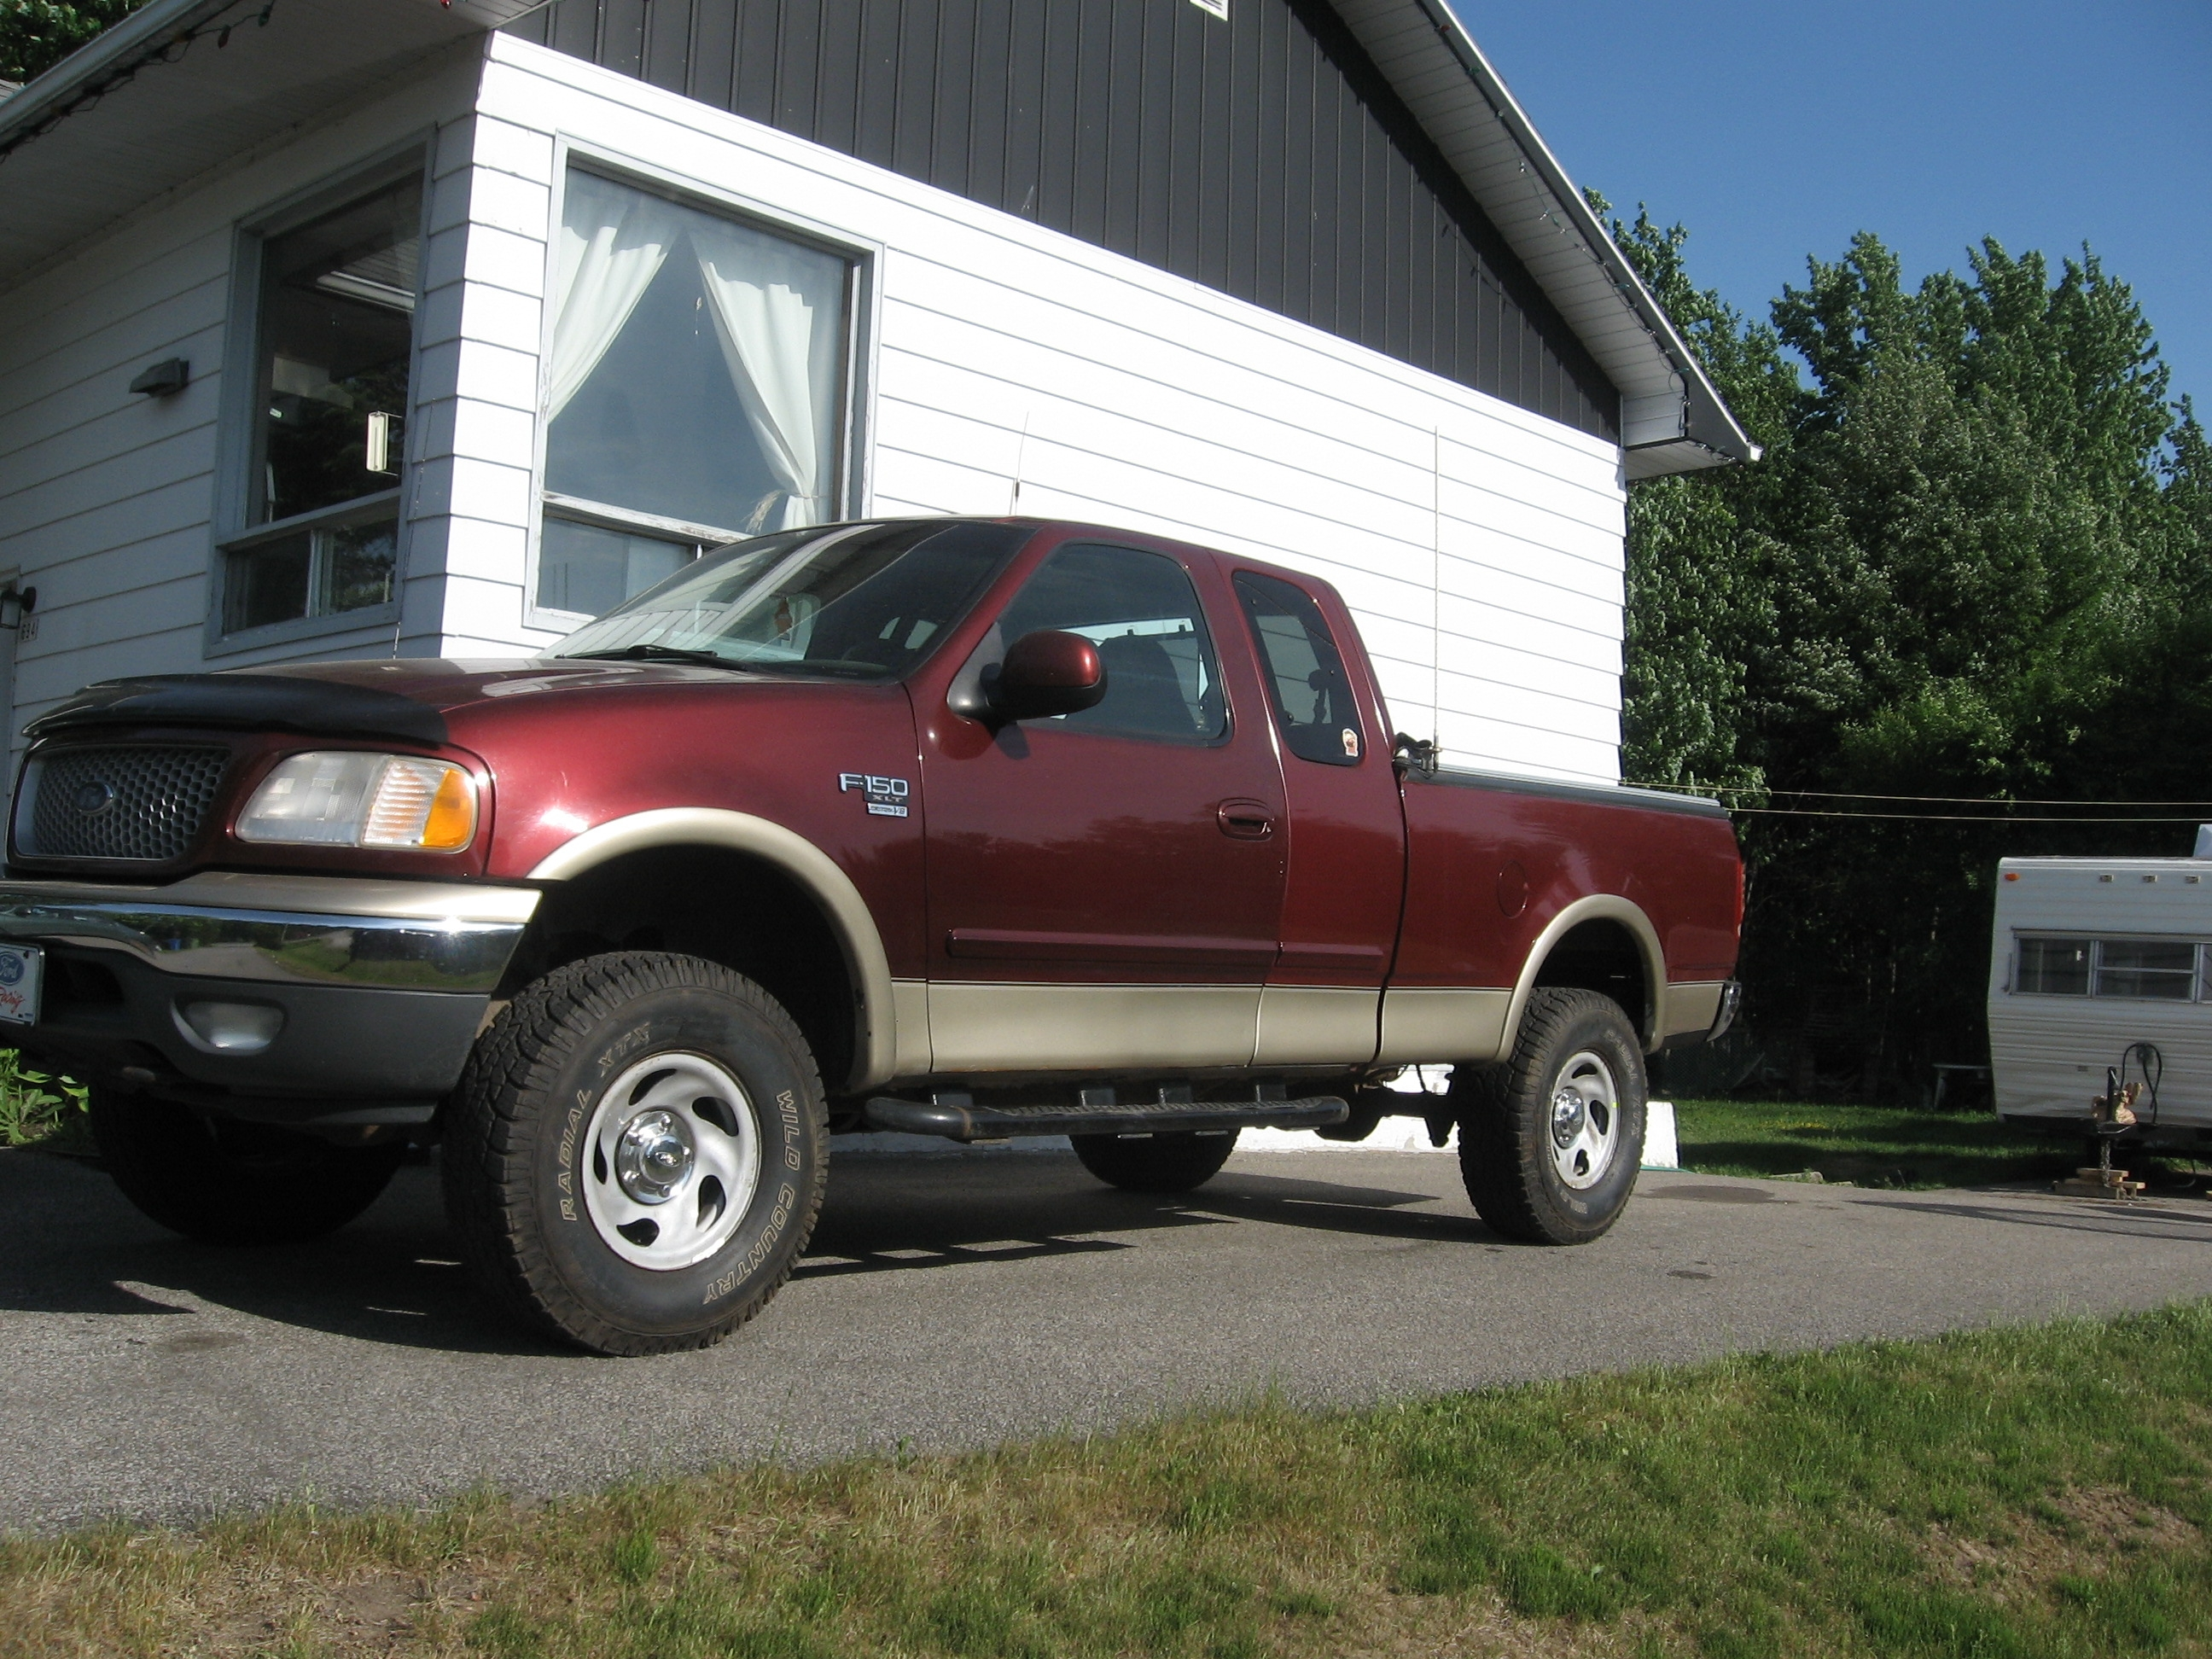 Guillaumef 150 1999 Ford F150 Super Cab Specs Photos Modification Info At Cardomain